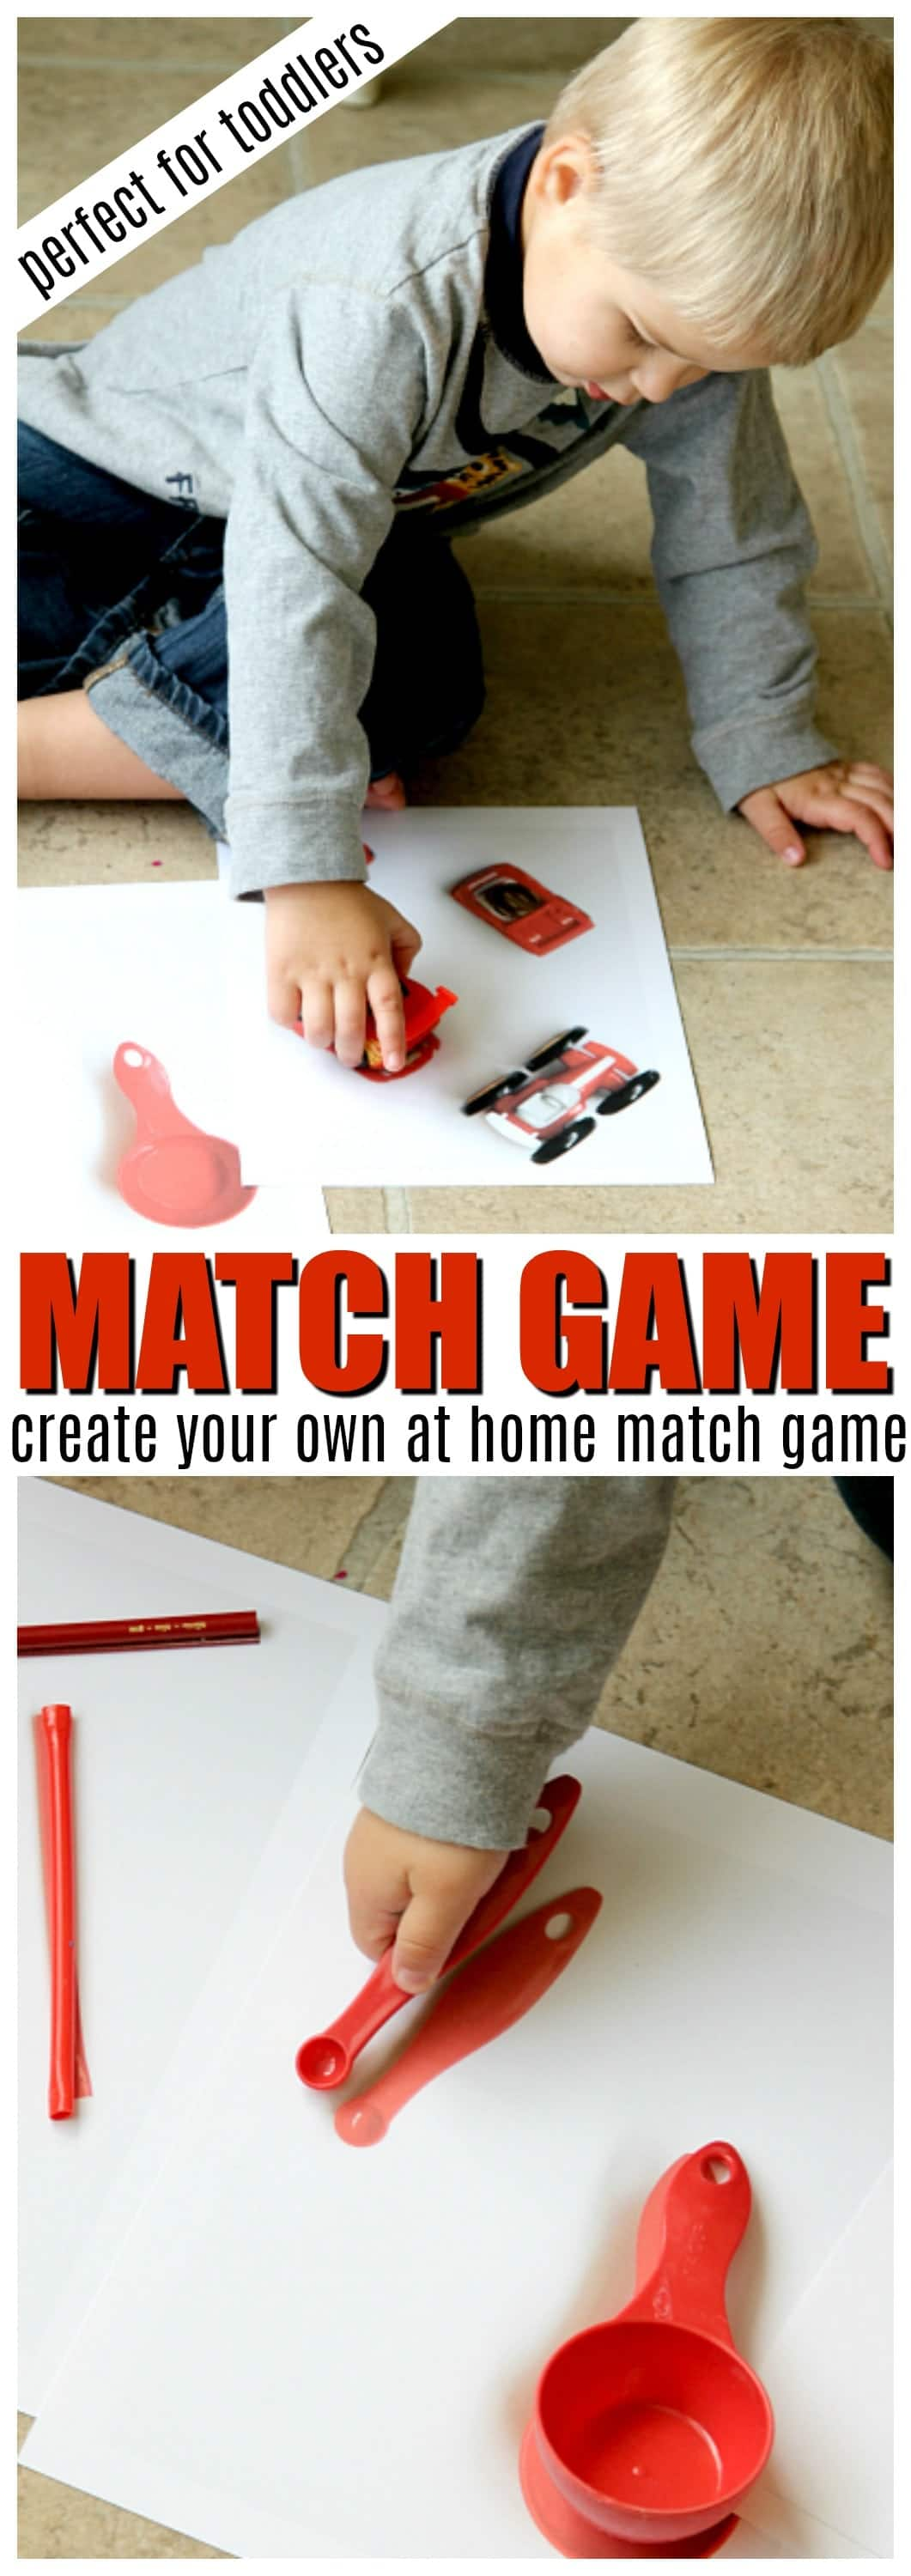 Create your own match game for toddlers, Montessori Sensory Bucket play with Matching common household items, group in shapes, colors and more. Easy play for kids 2-3 years of age.